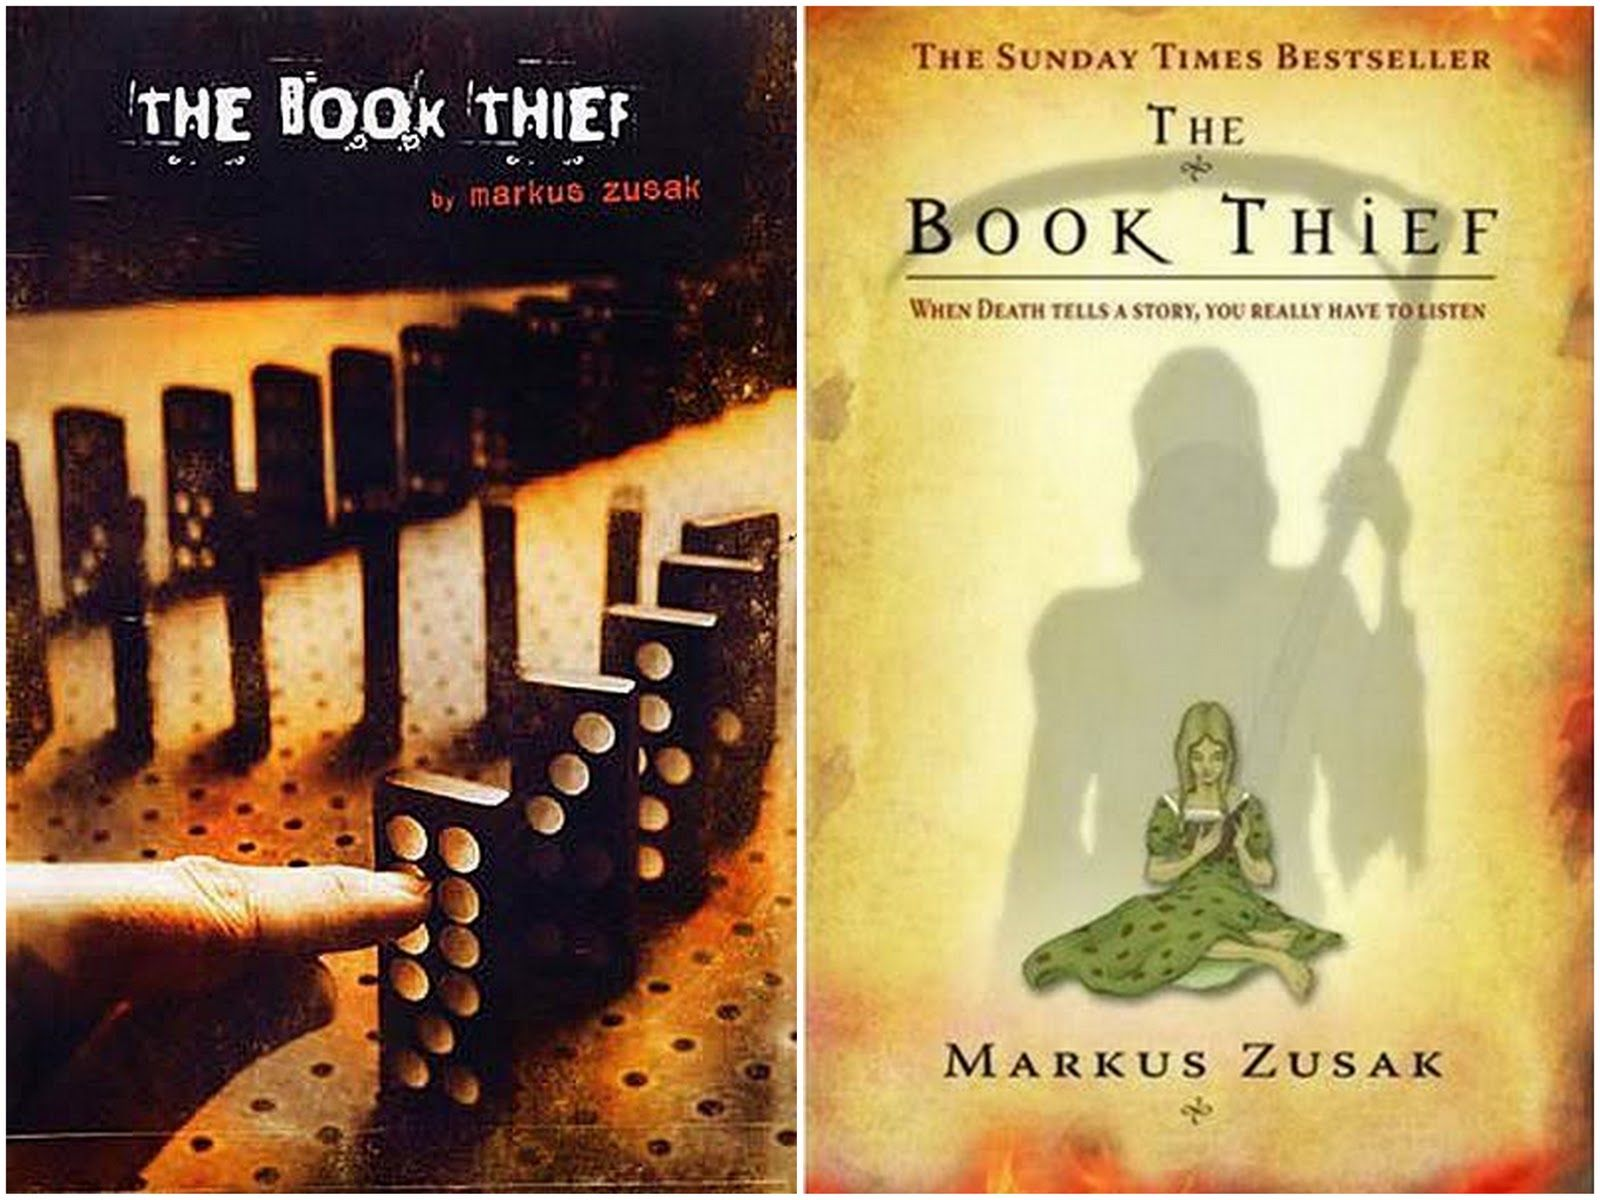 best images about the book thief nazi 17 best images about the book thief nazi concentration camps anne frank and markus zusak